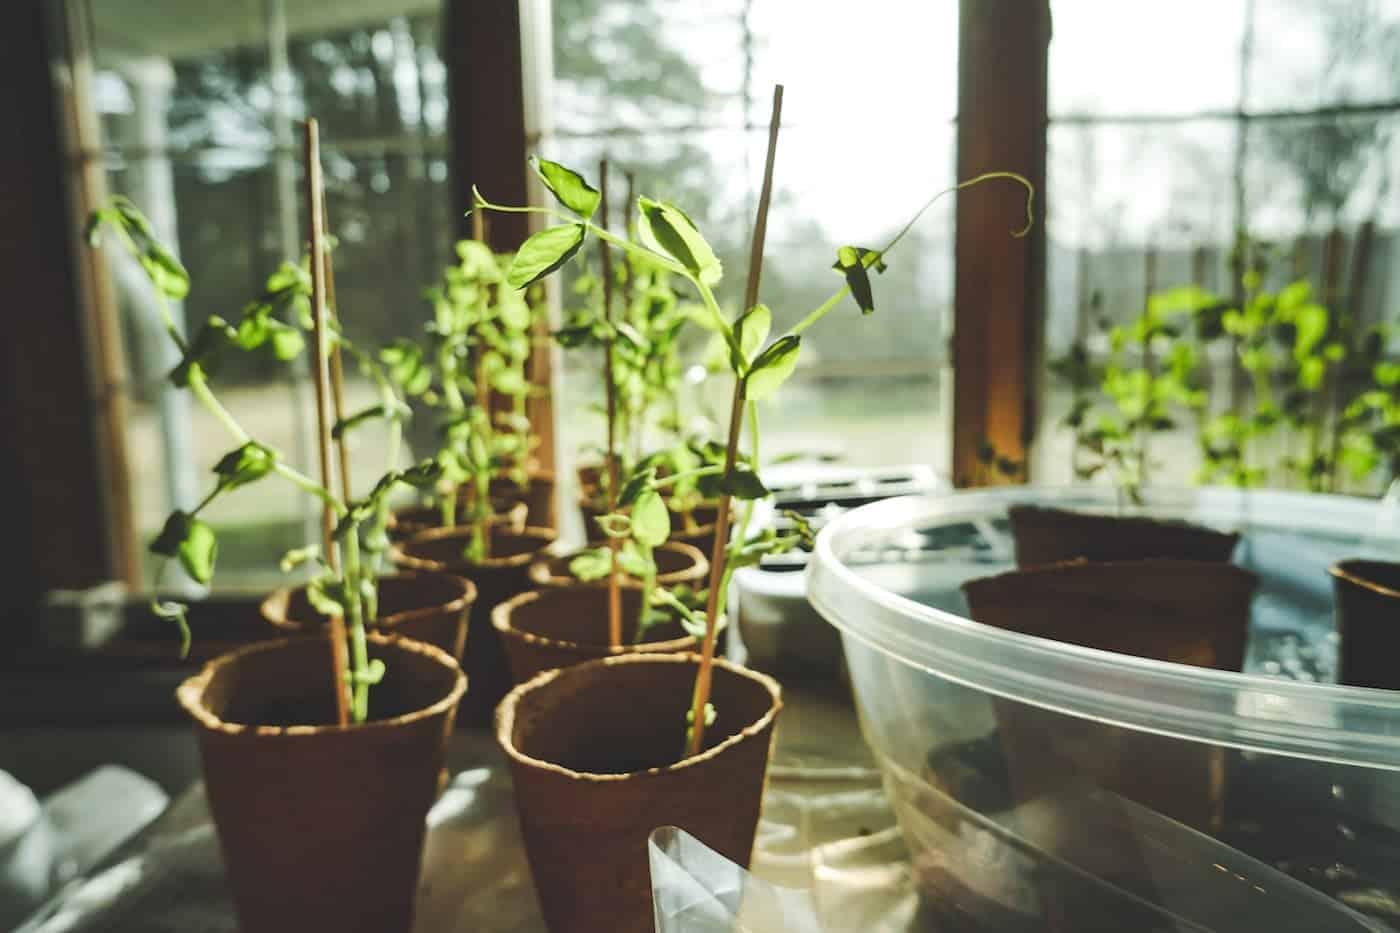 young seeds and plants growing to represent business growth